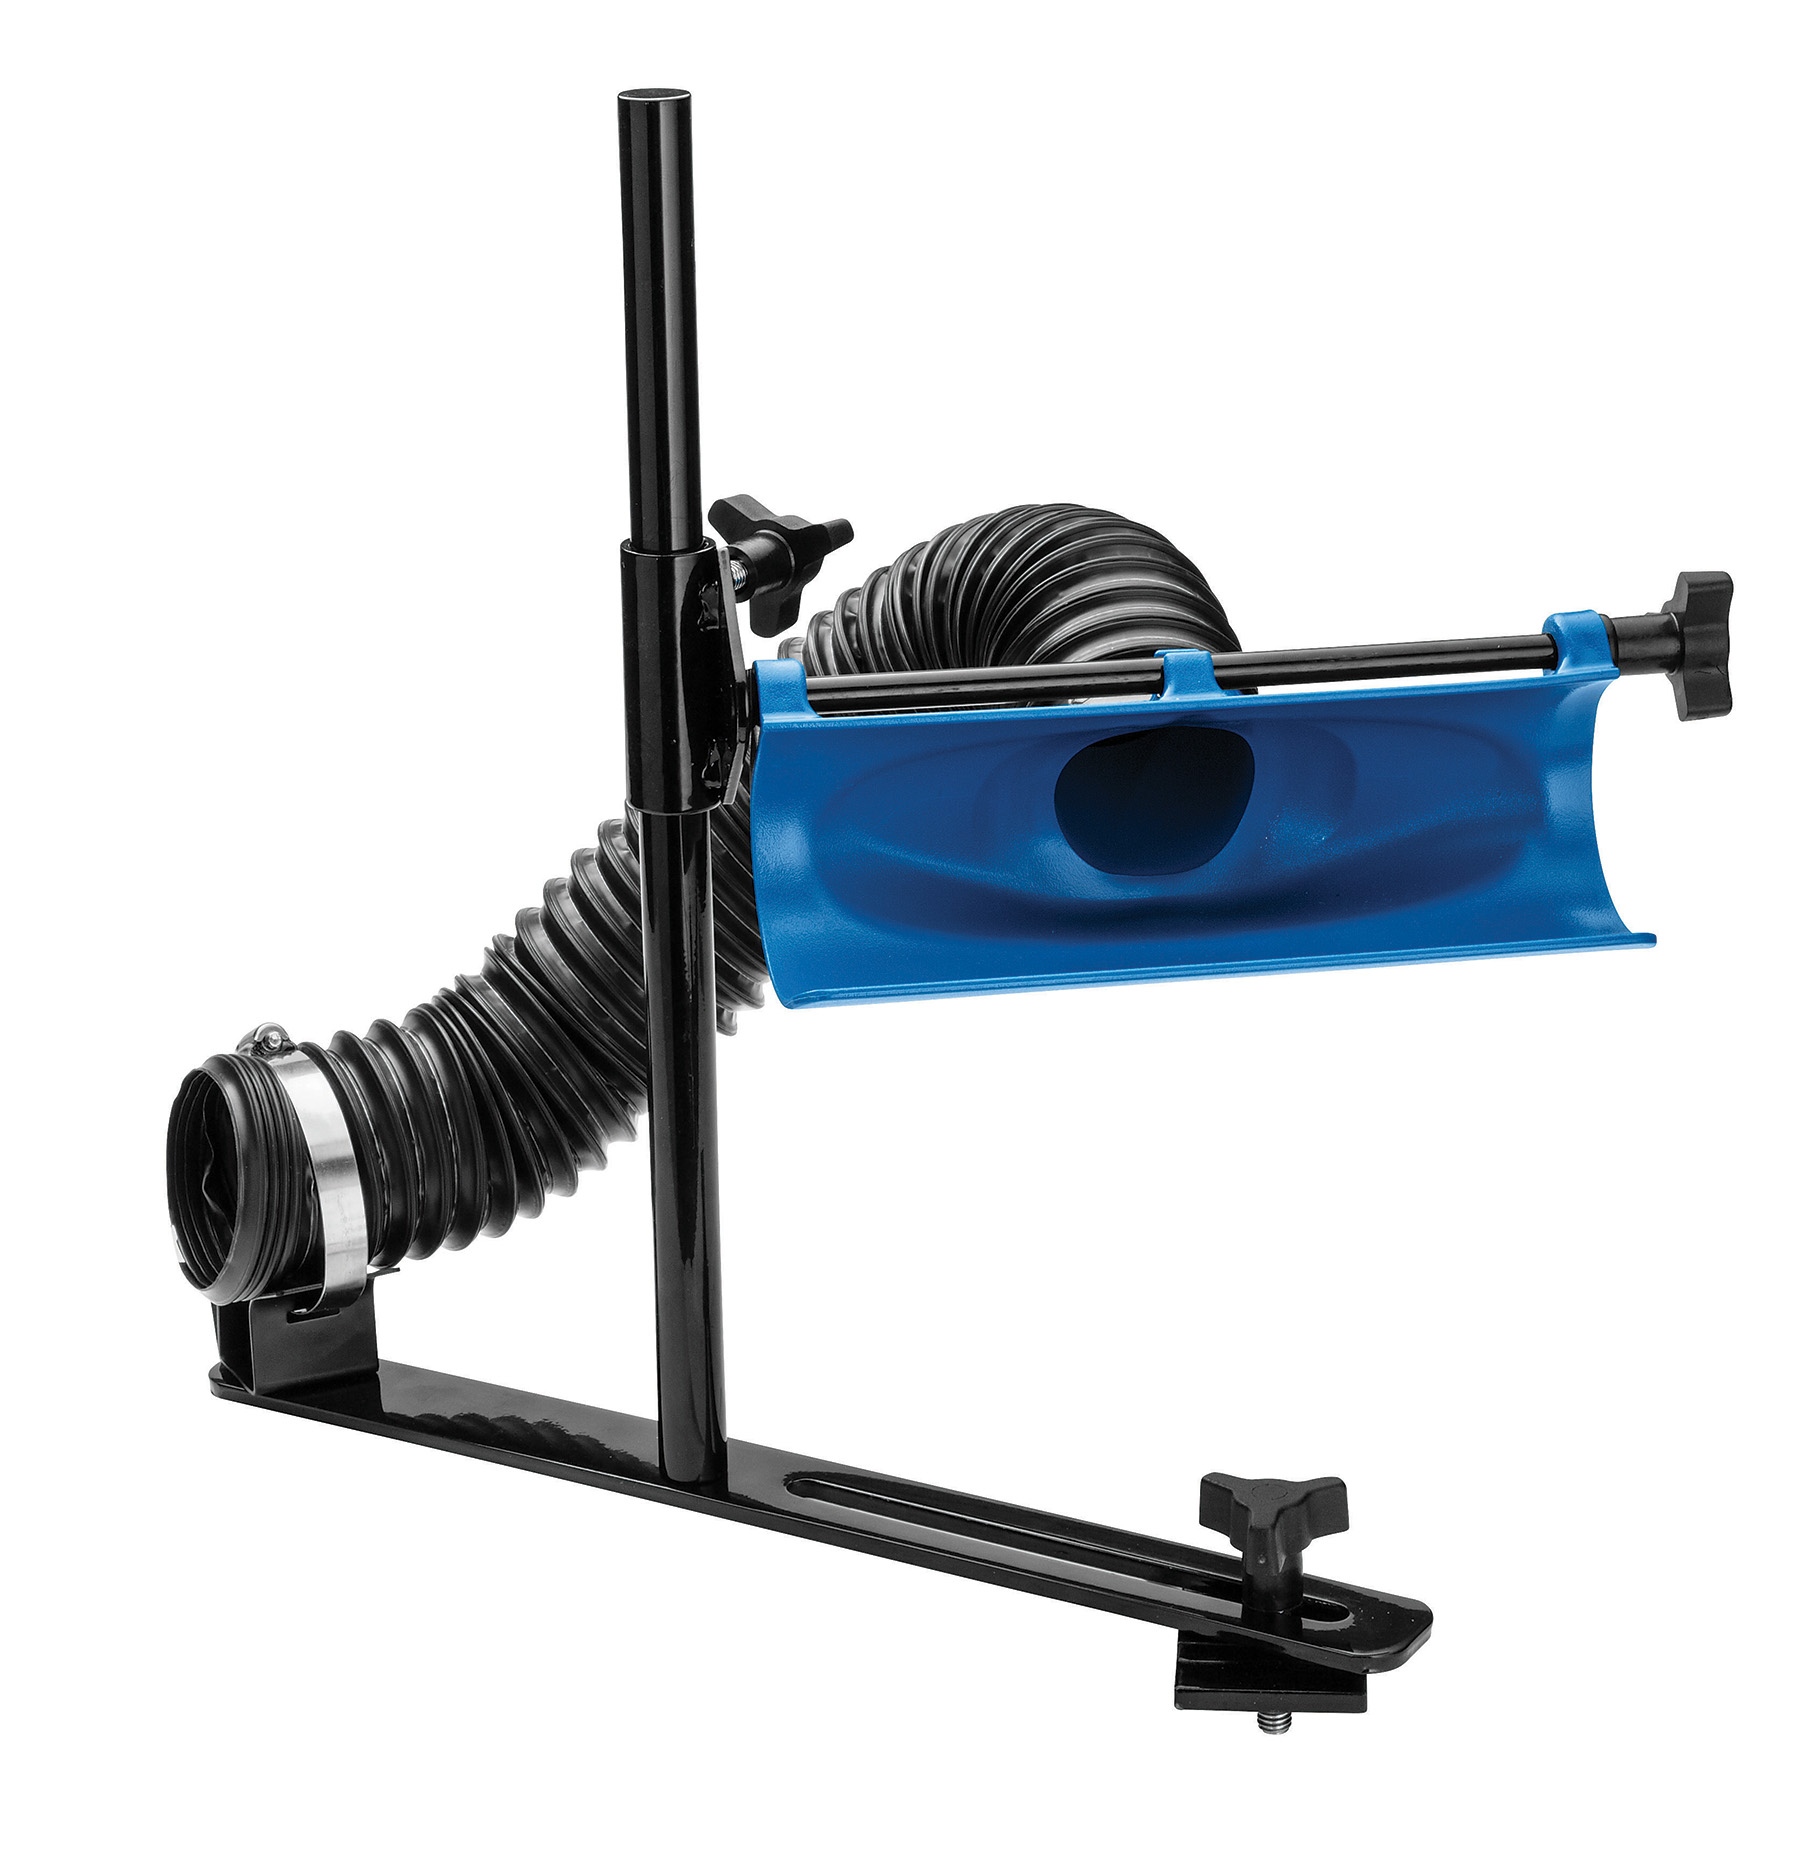 Rockler Introduces Dust Right System To Improve Dust